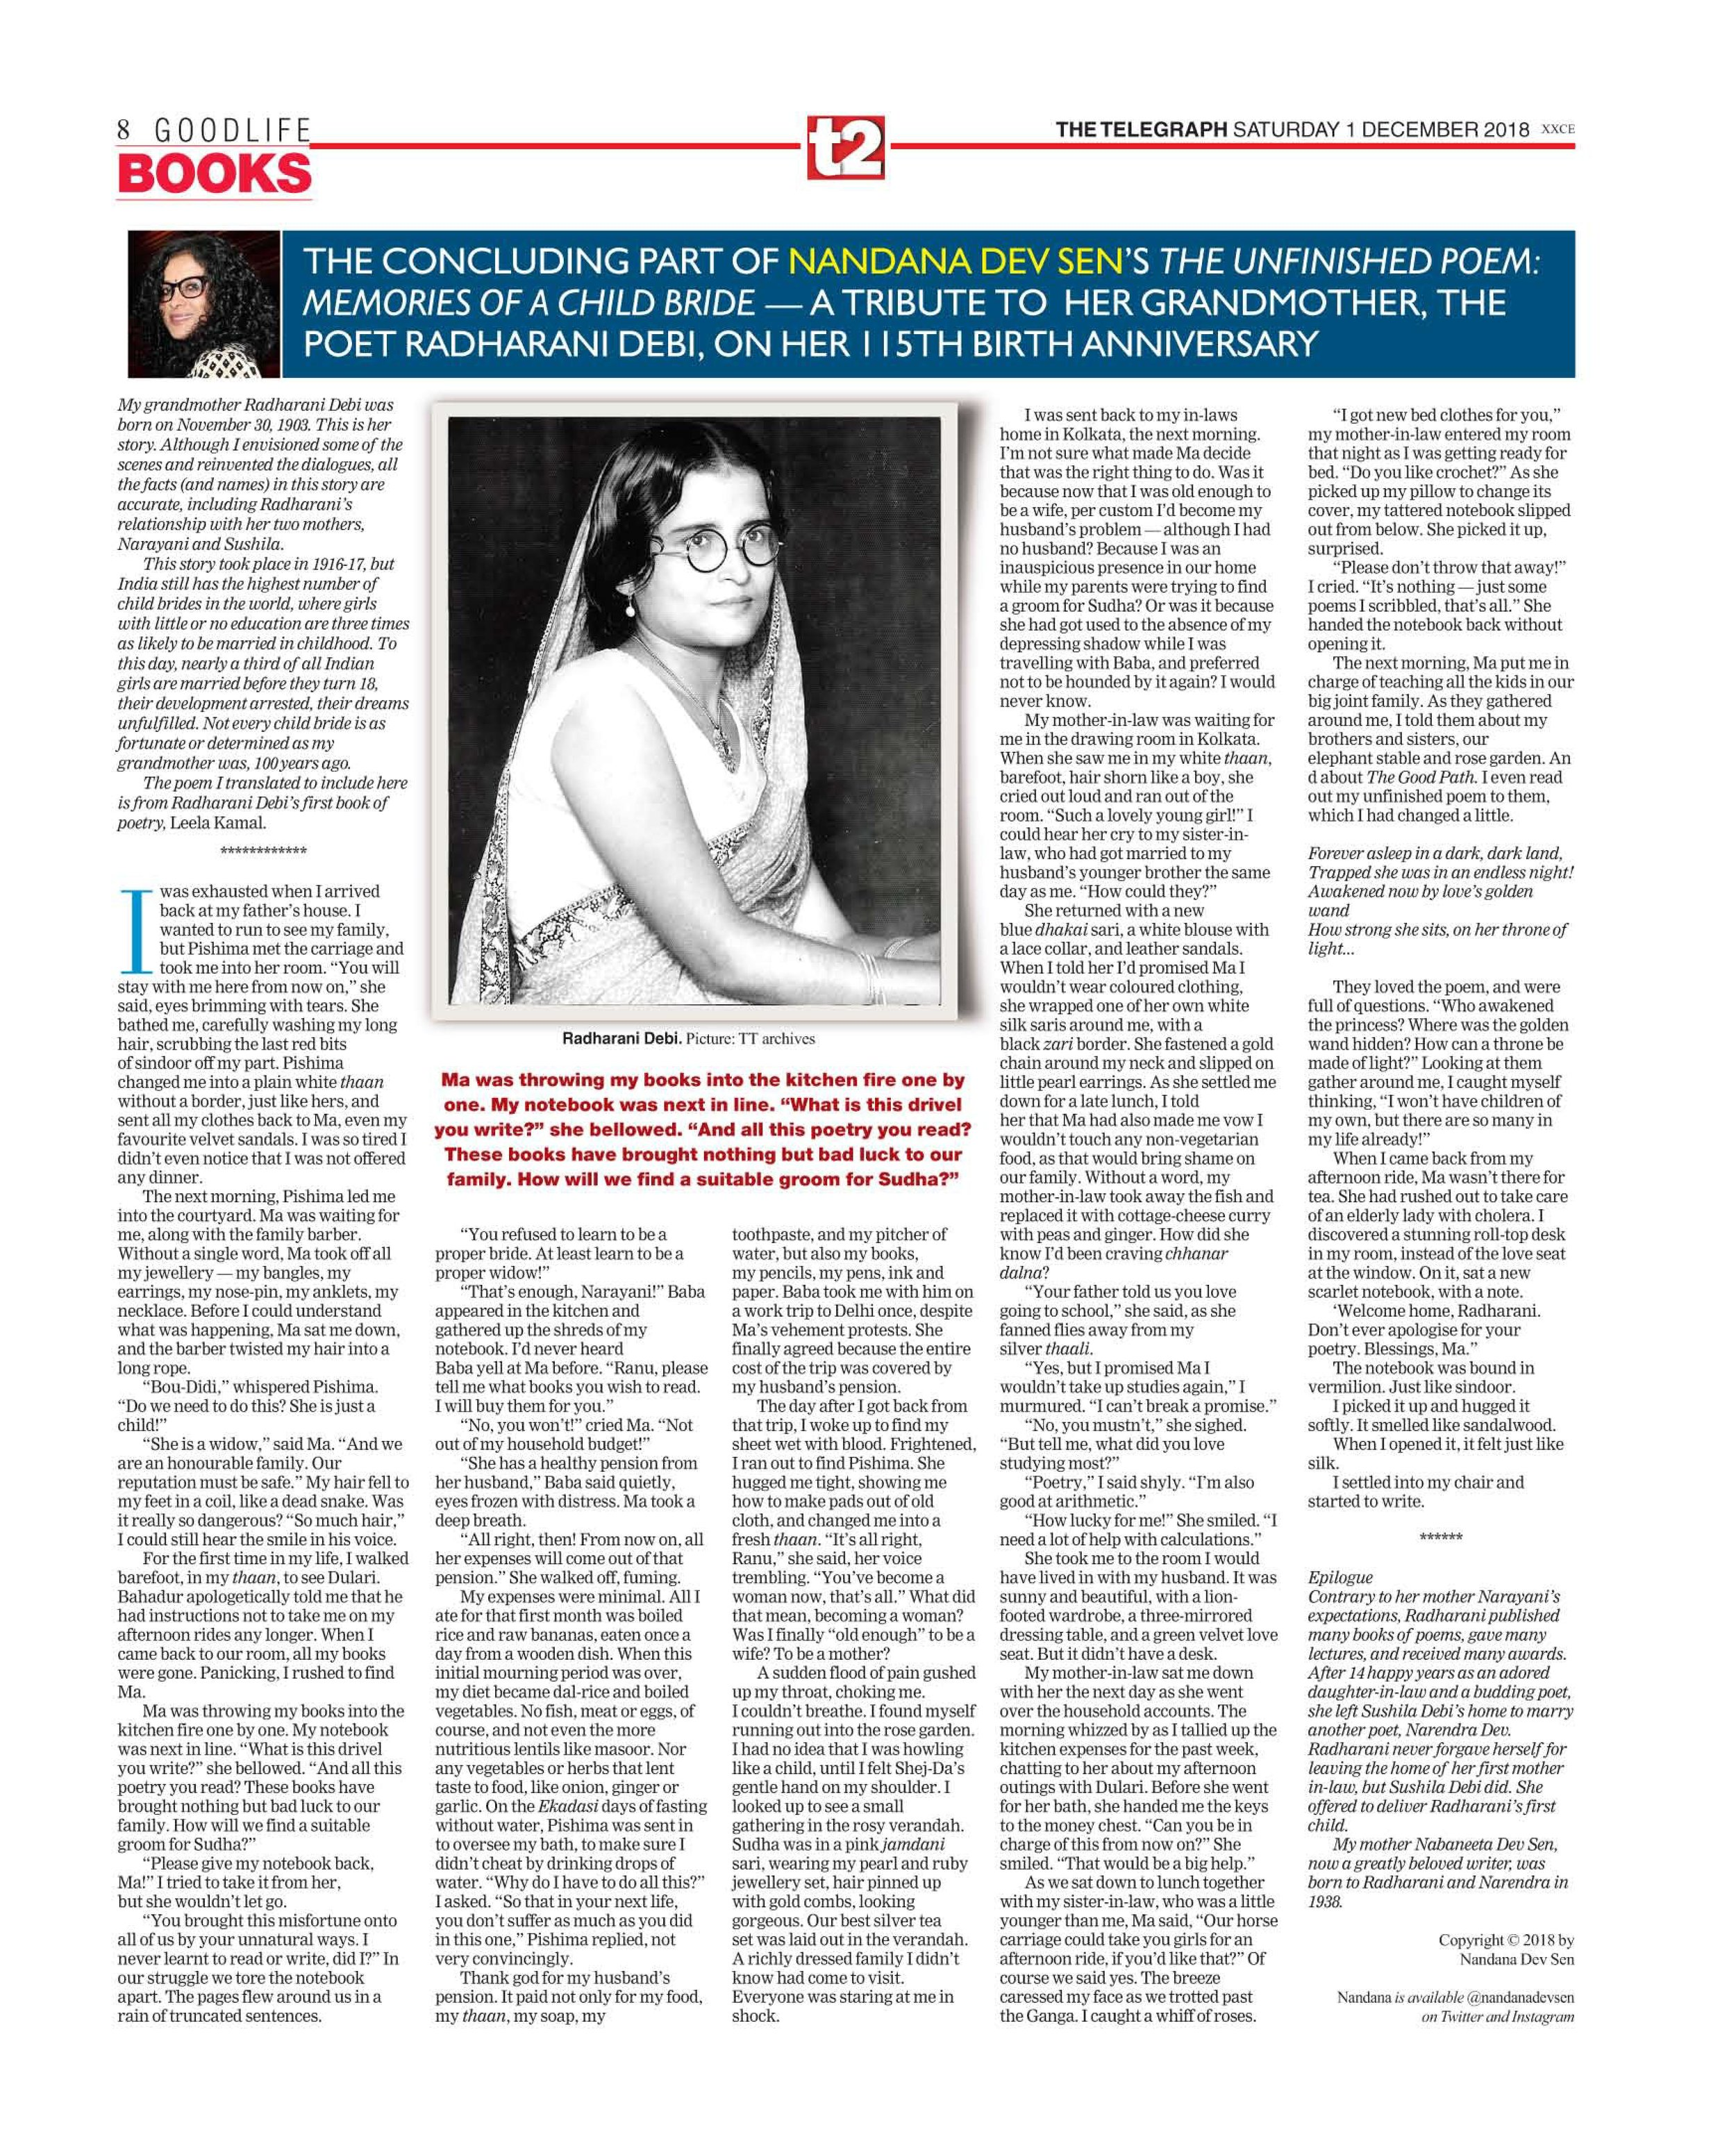 The Unfinished Poem: Memories of a Child Bride  - click here for Part III  Telegraph India December 1, 2018